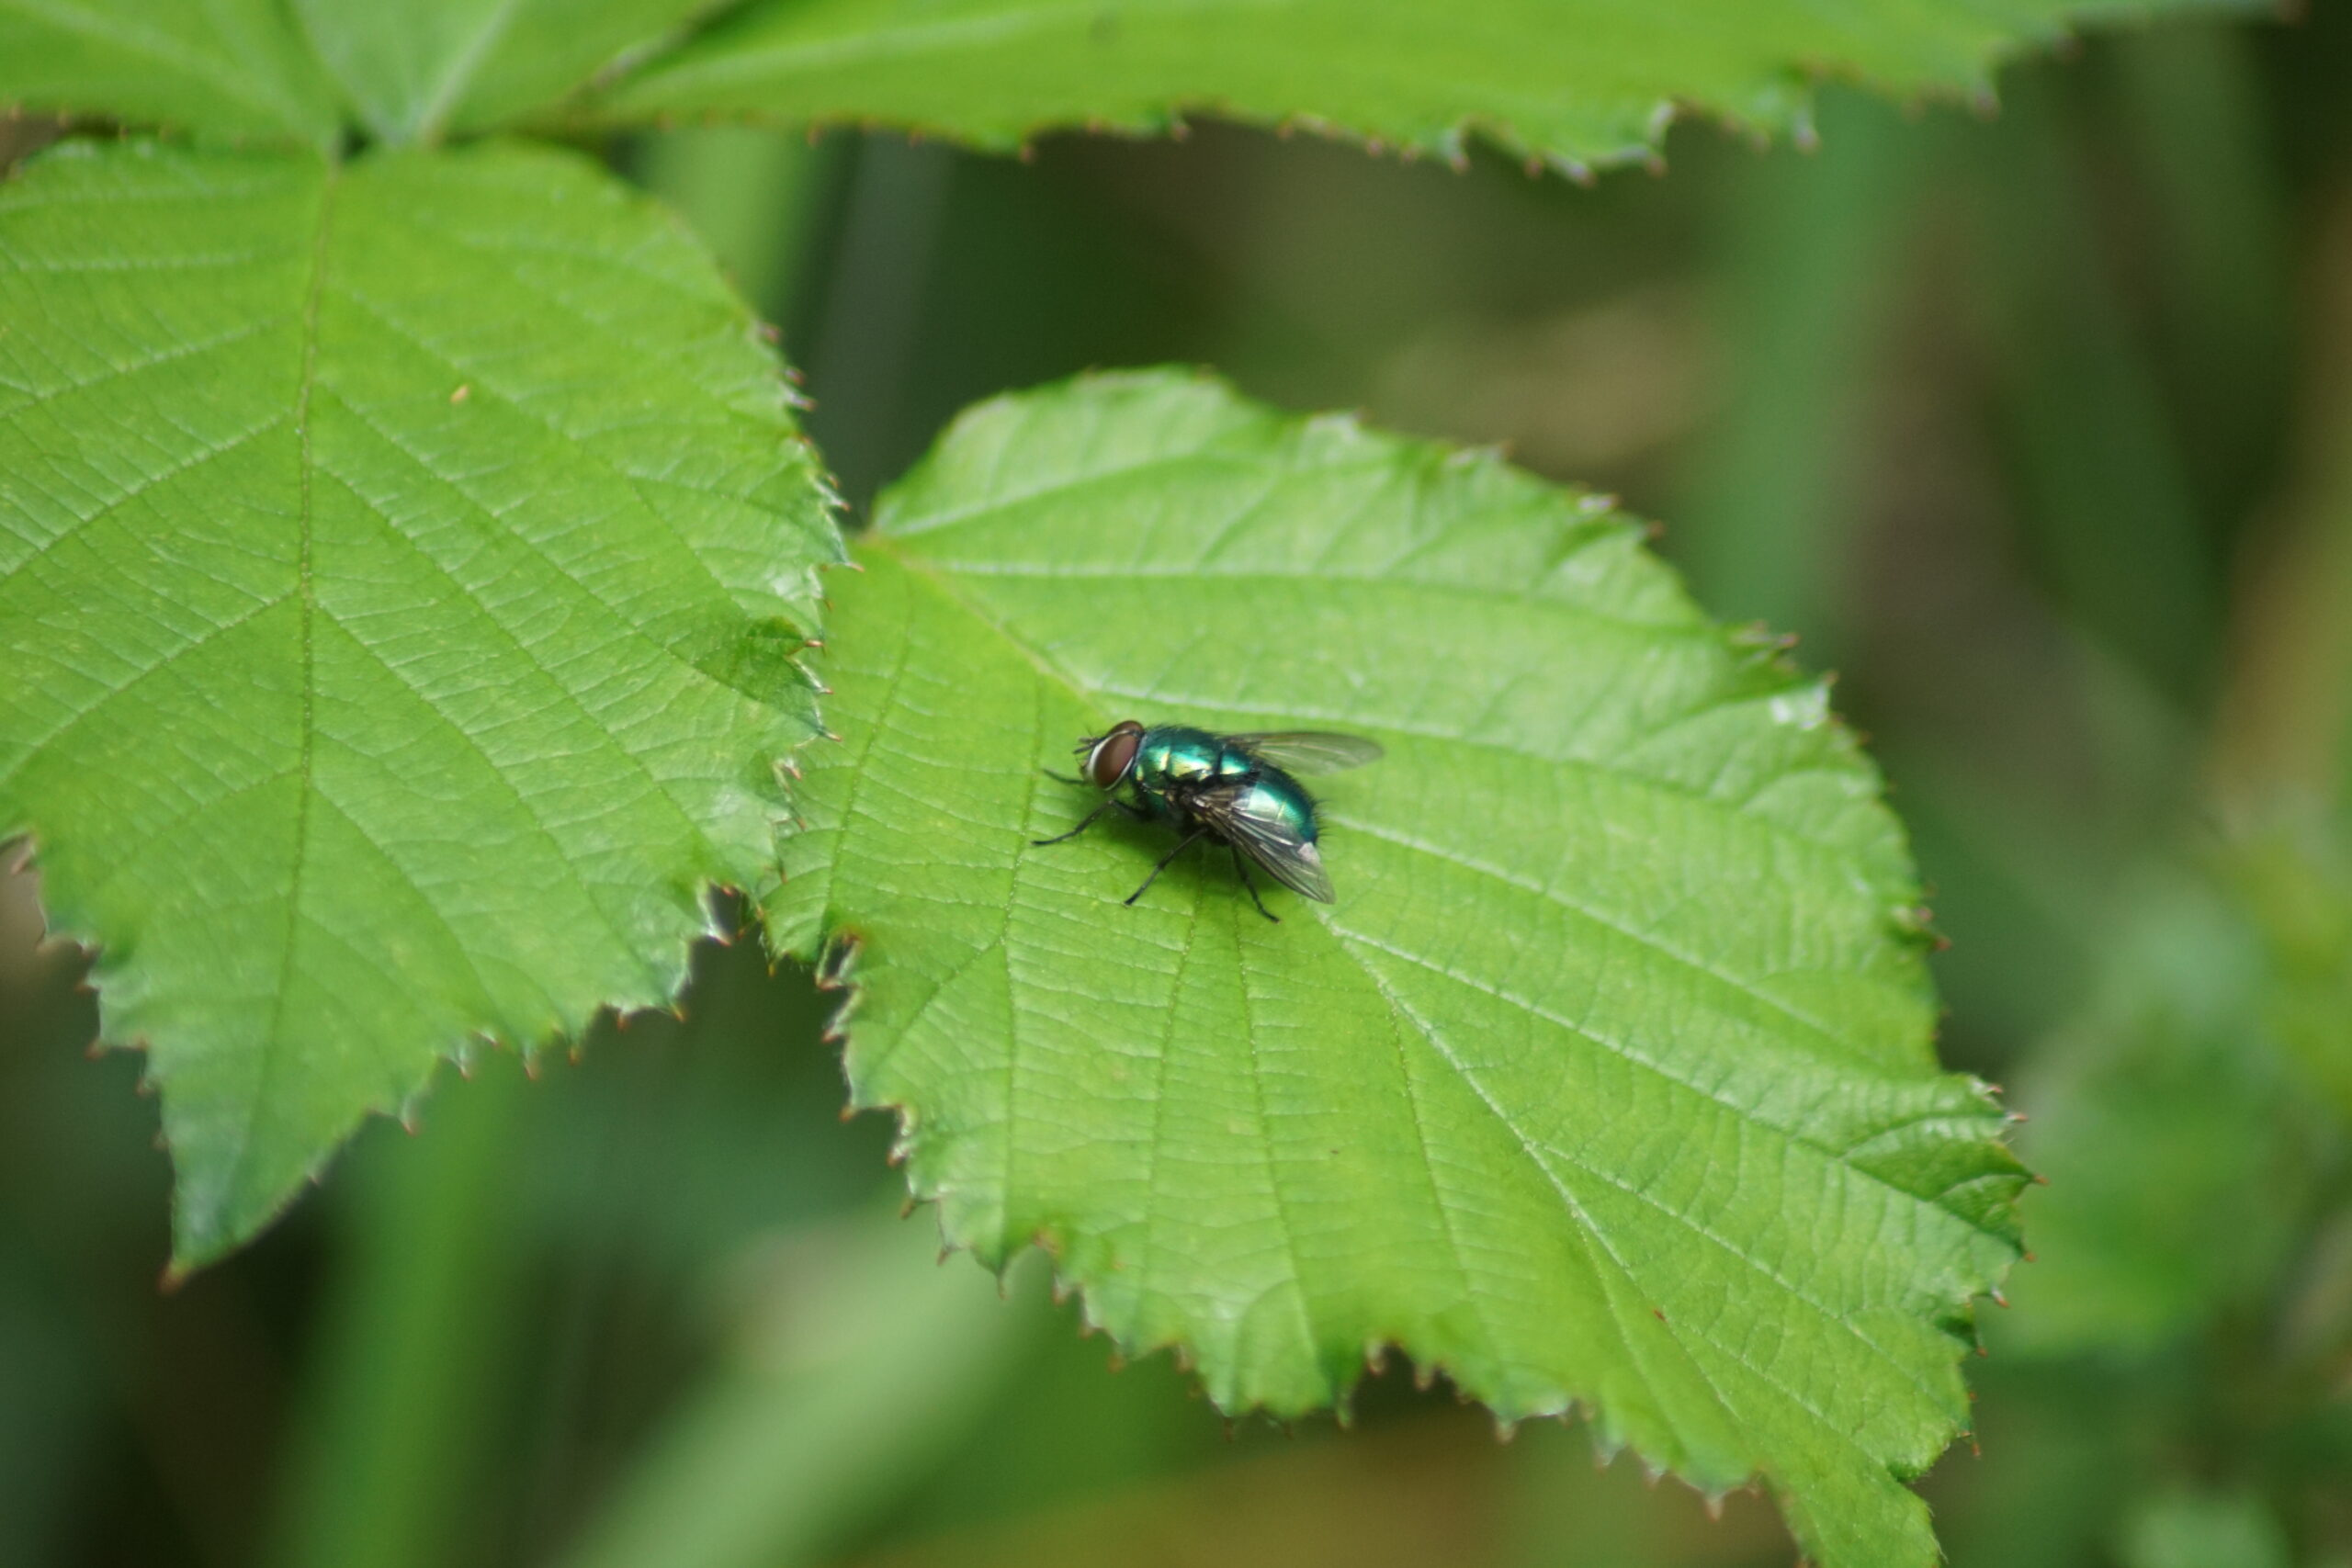 Possibly - Blow fly - Lucilia caesar